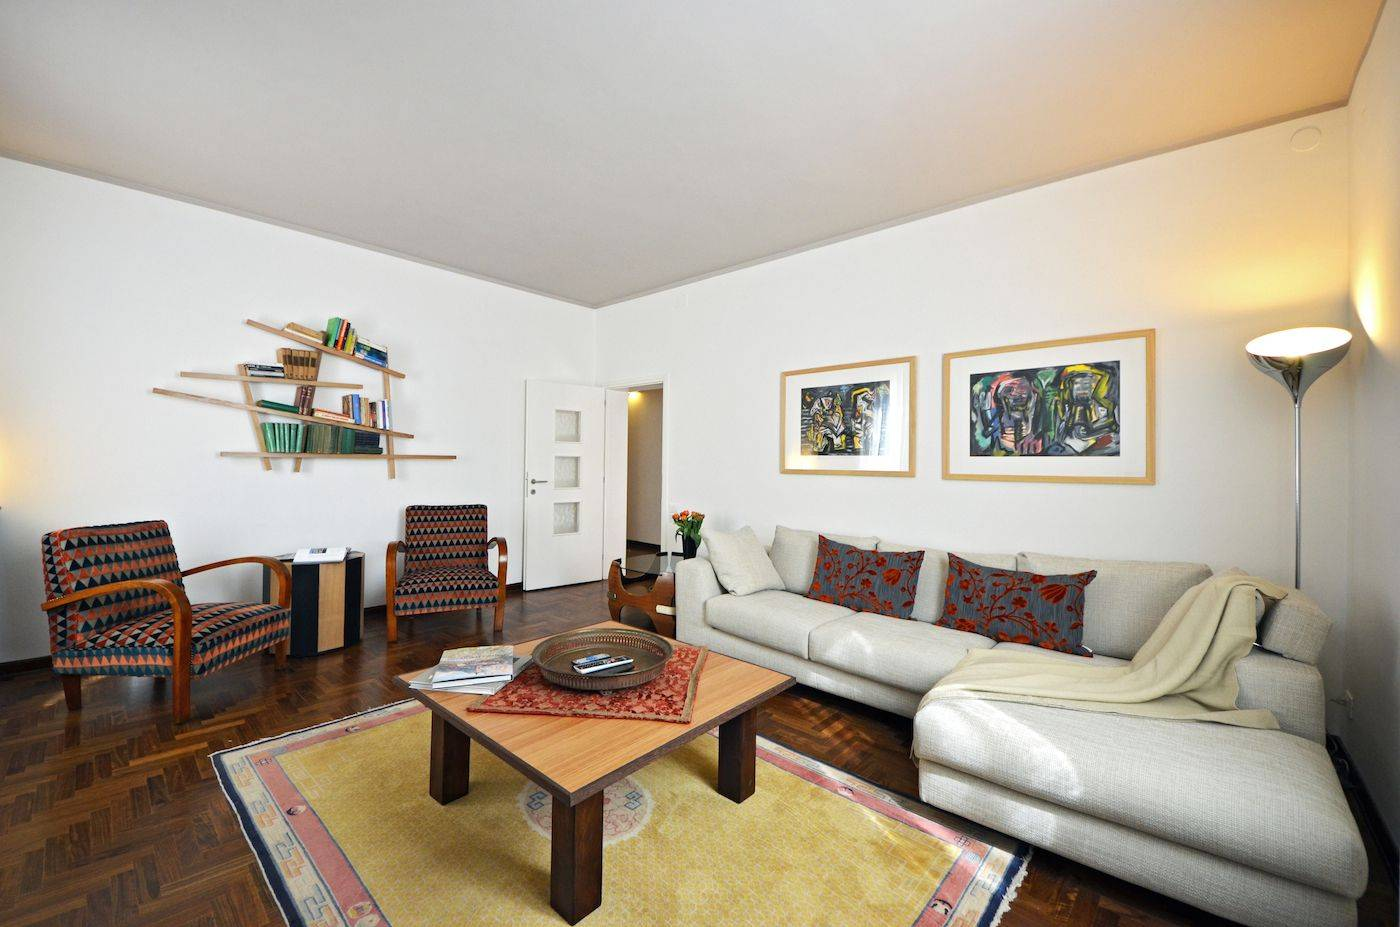 the spacious and welcoming Sansovino apartment living room in Dorsoduro, Venice